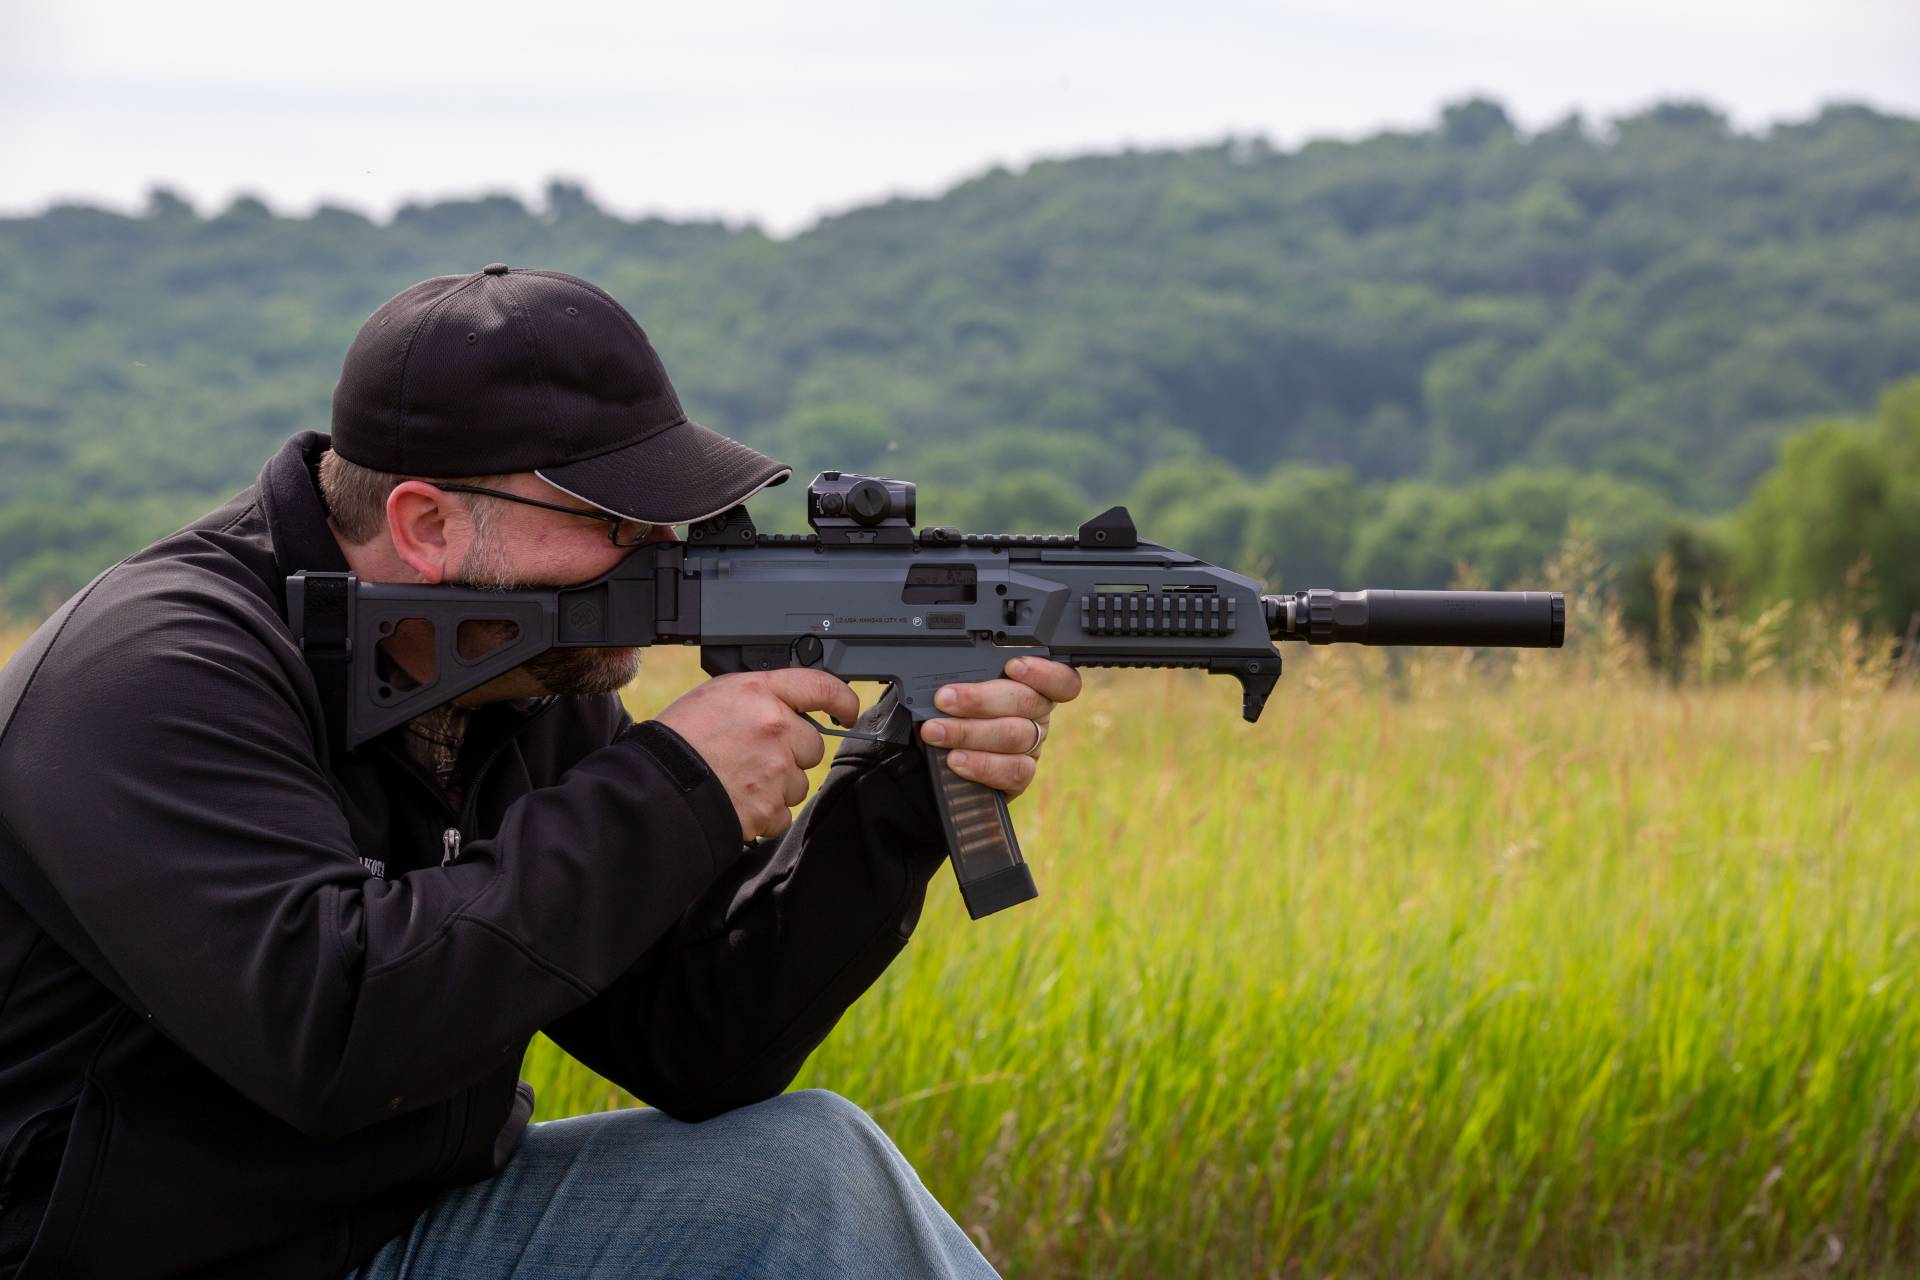 SBR Tax Stamp: How to Buy a Short-Barrel Rifle